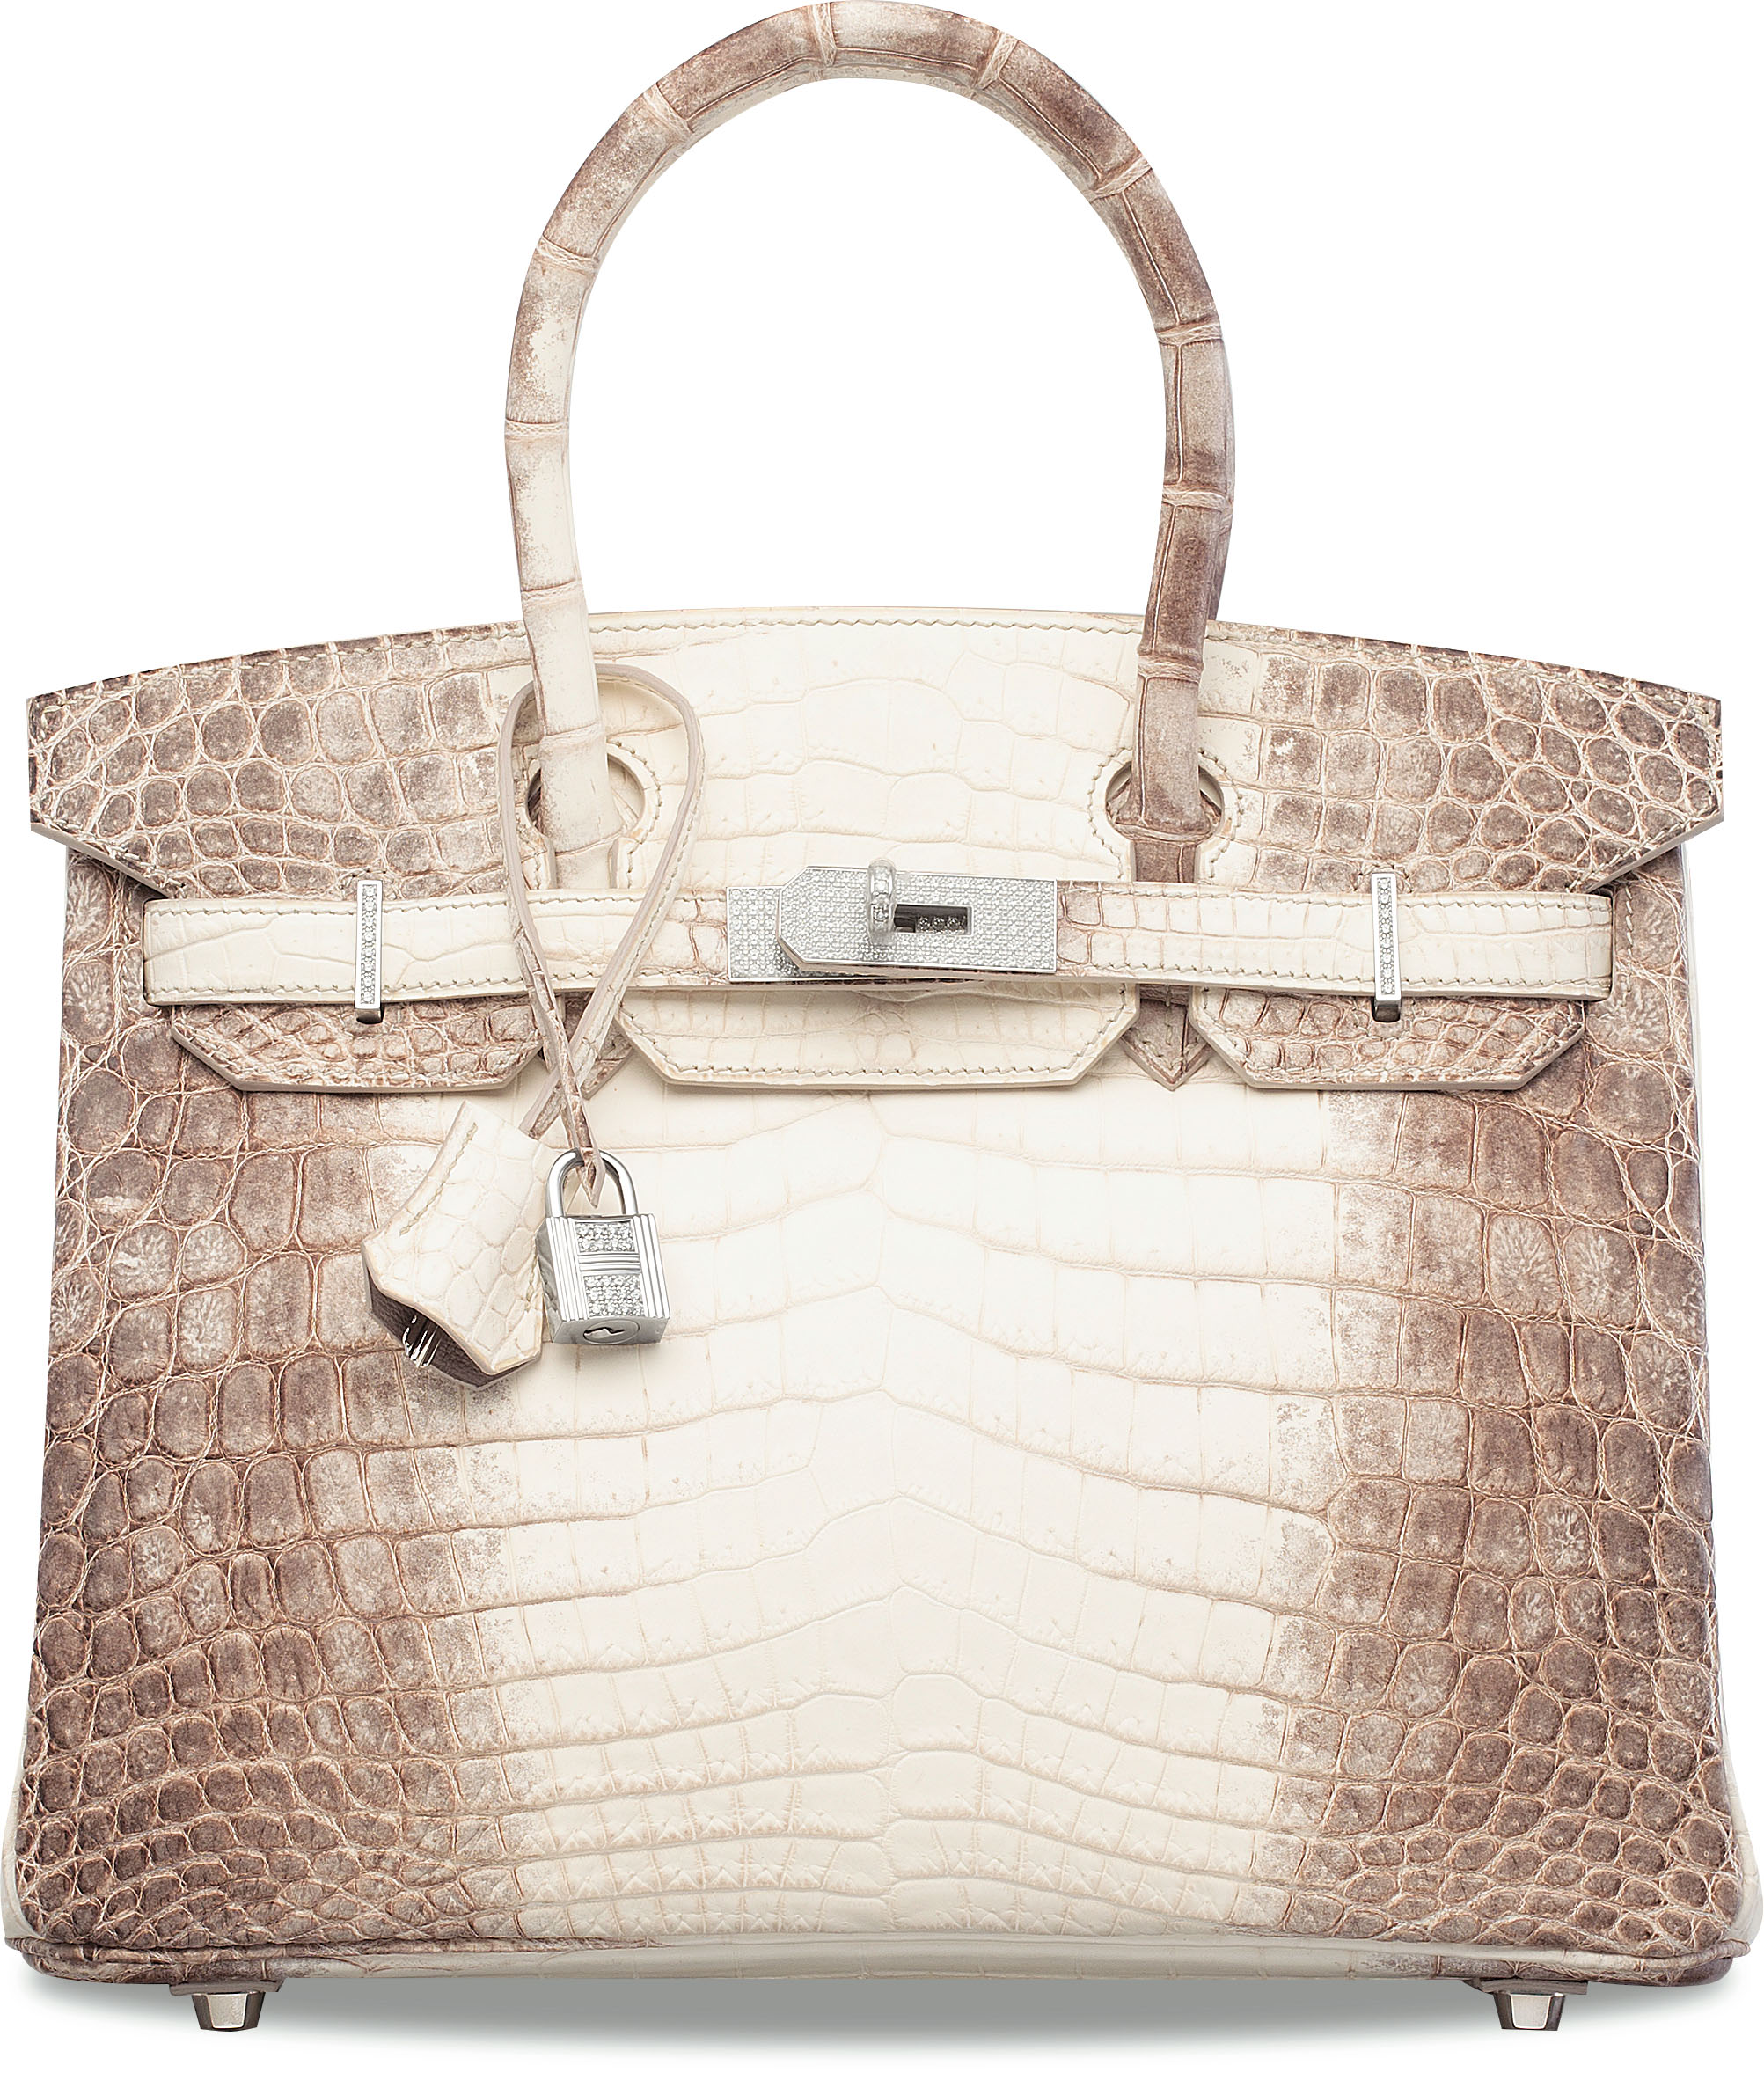 A 2011 Himalaya Niloticus crocodile Hermès Birkin 30 handbag with 18k white gold and diamond hardware. As of November 2019, it holds the world auction record for any handbag.